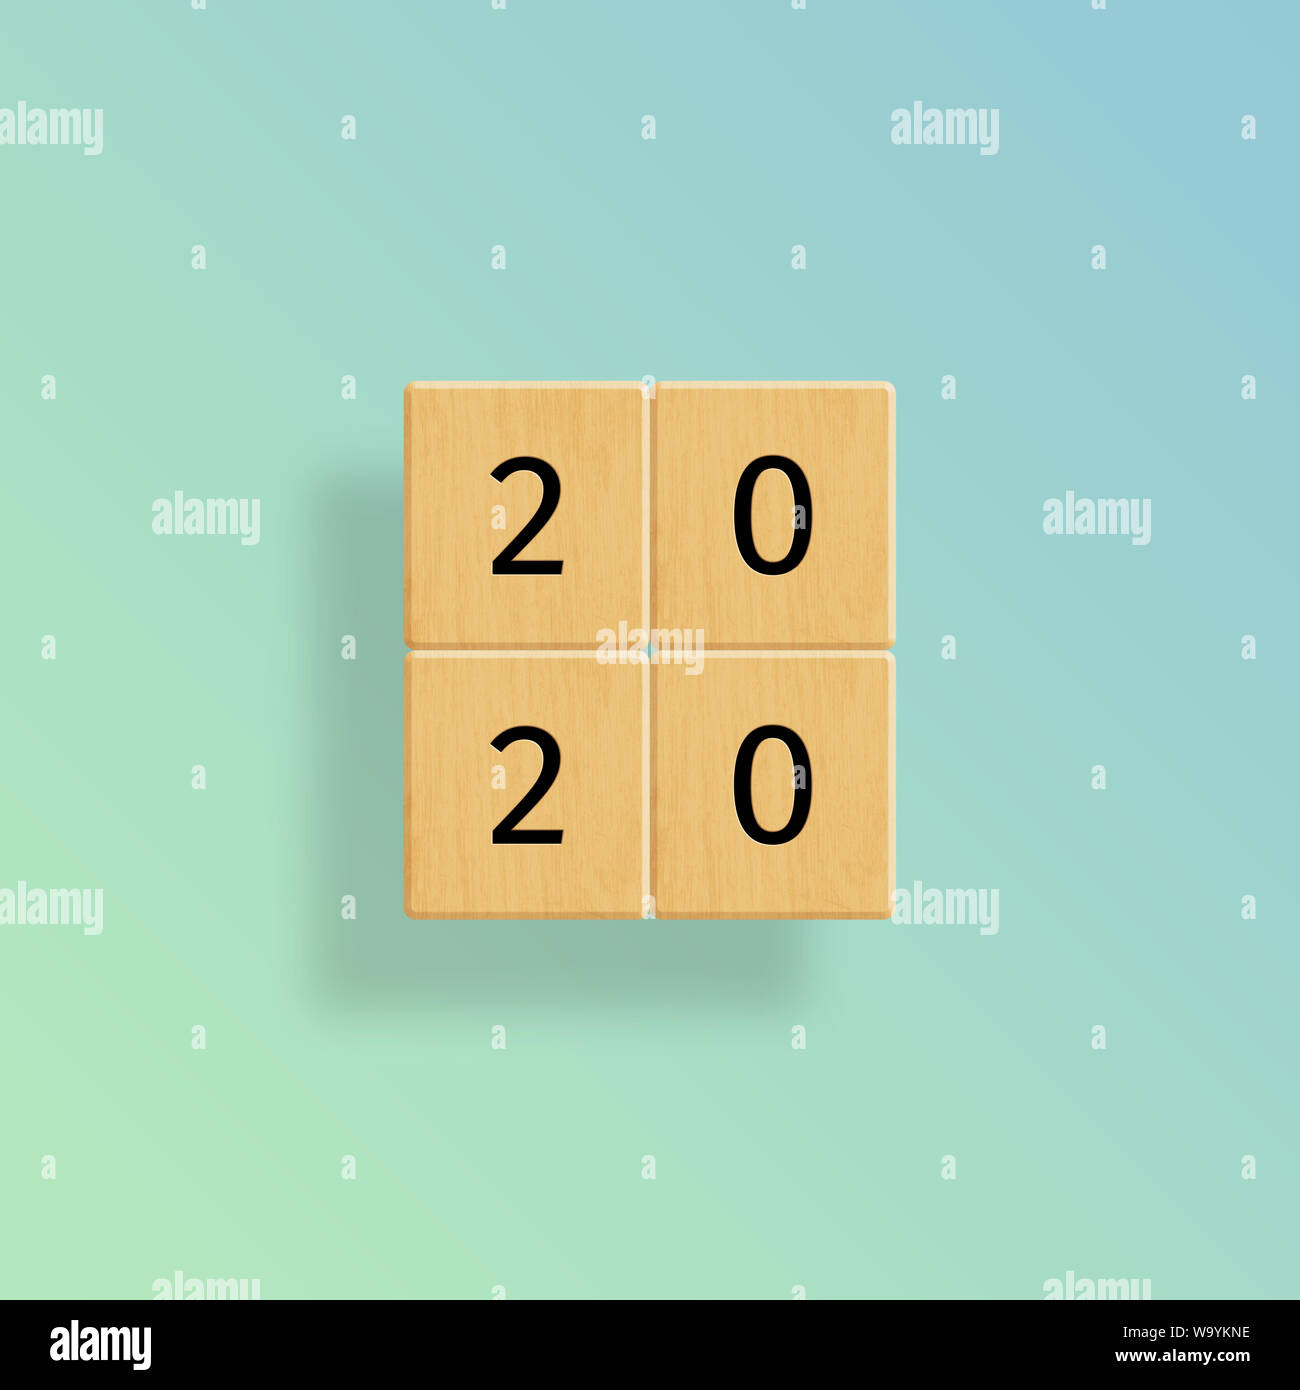 2020 Tiles on Blue to Green Gradient Stock Photo